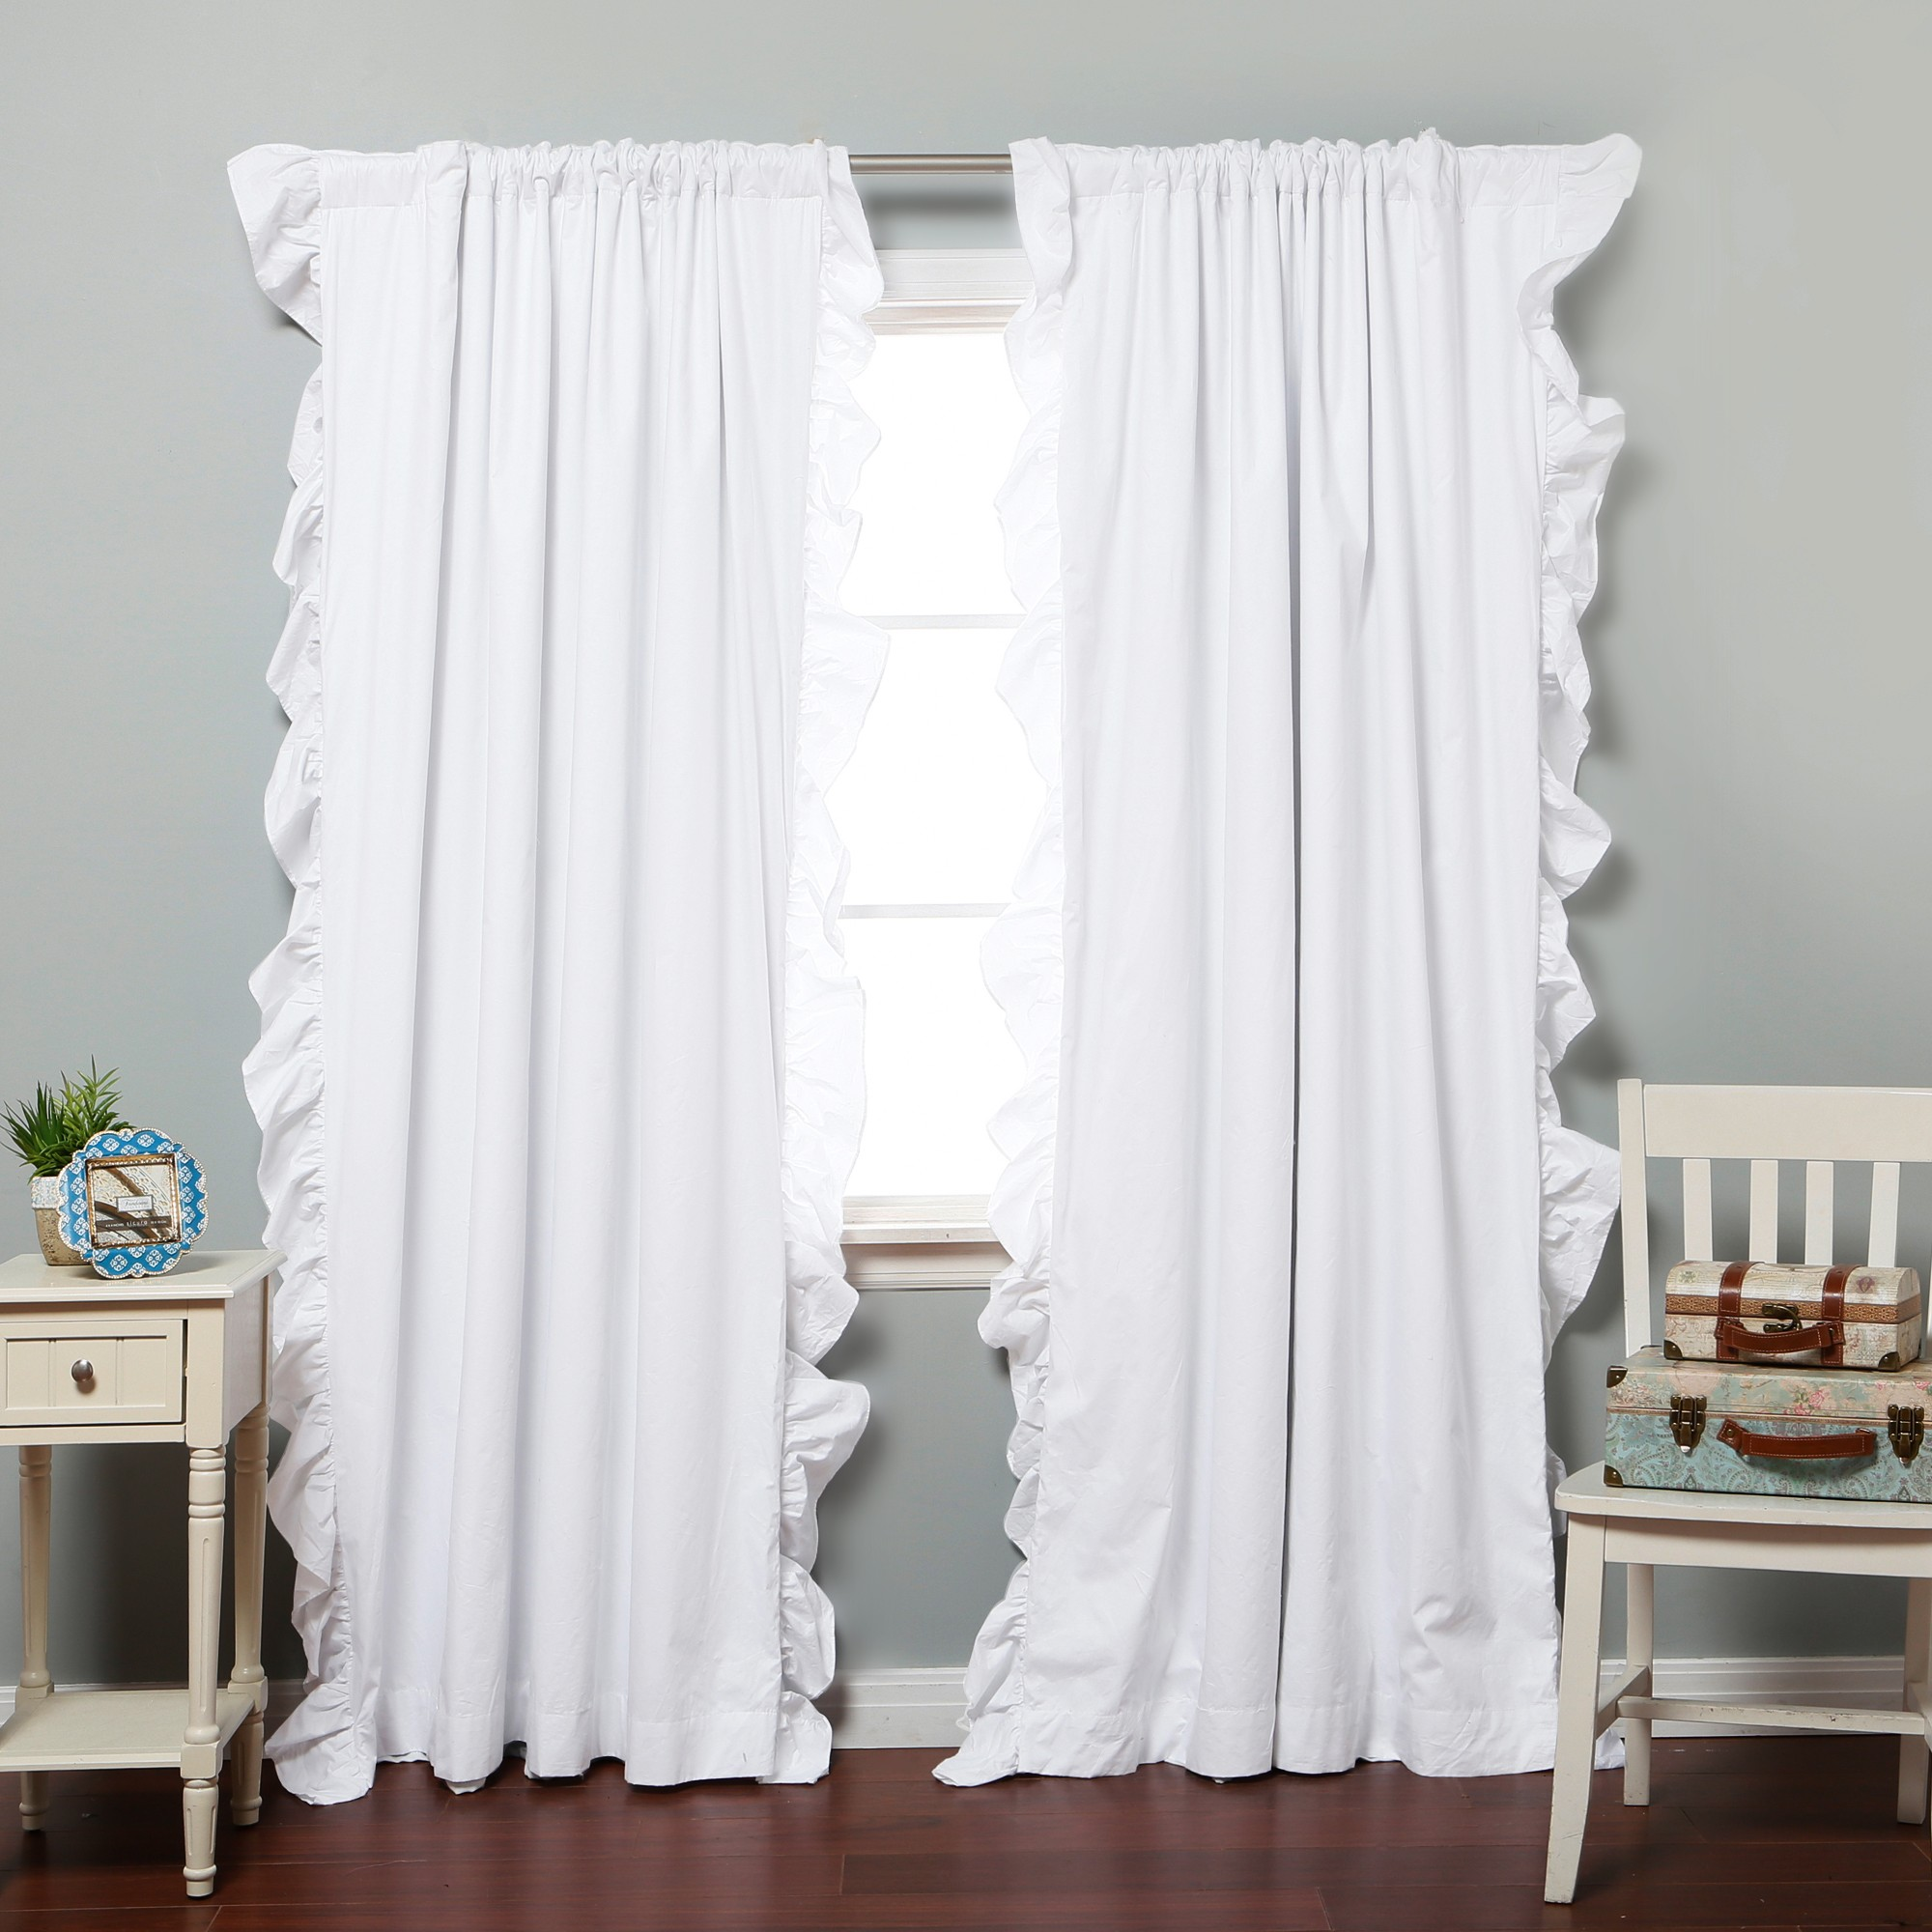 Ruffle Blackout Curtains | Land of Nod Blackout Curtains | Ruffled Drapes